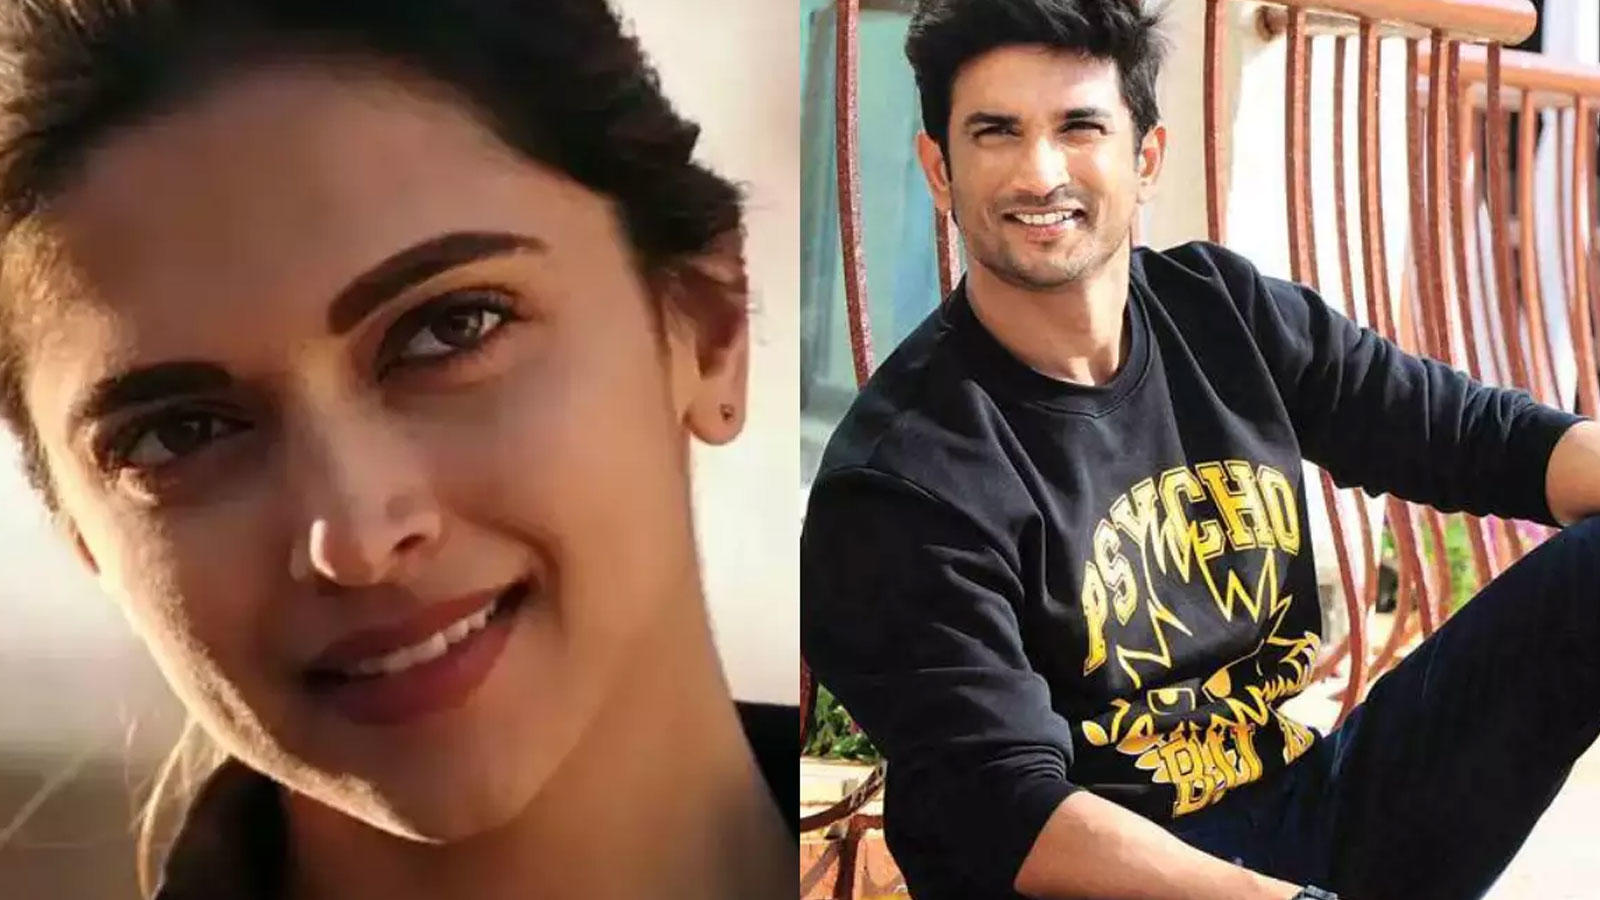 sushant-singh-rajput-fans-troll-deepika-padukone-for-her-depression-tweets-after-his-death